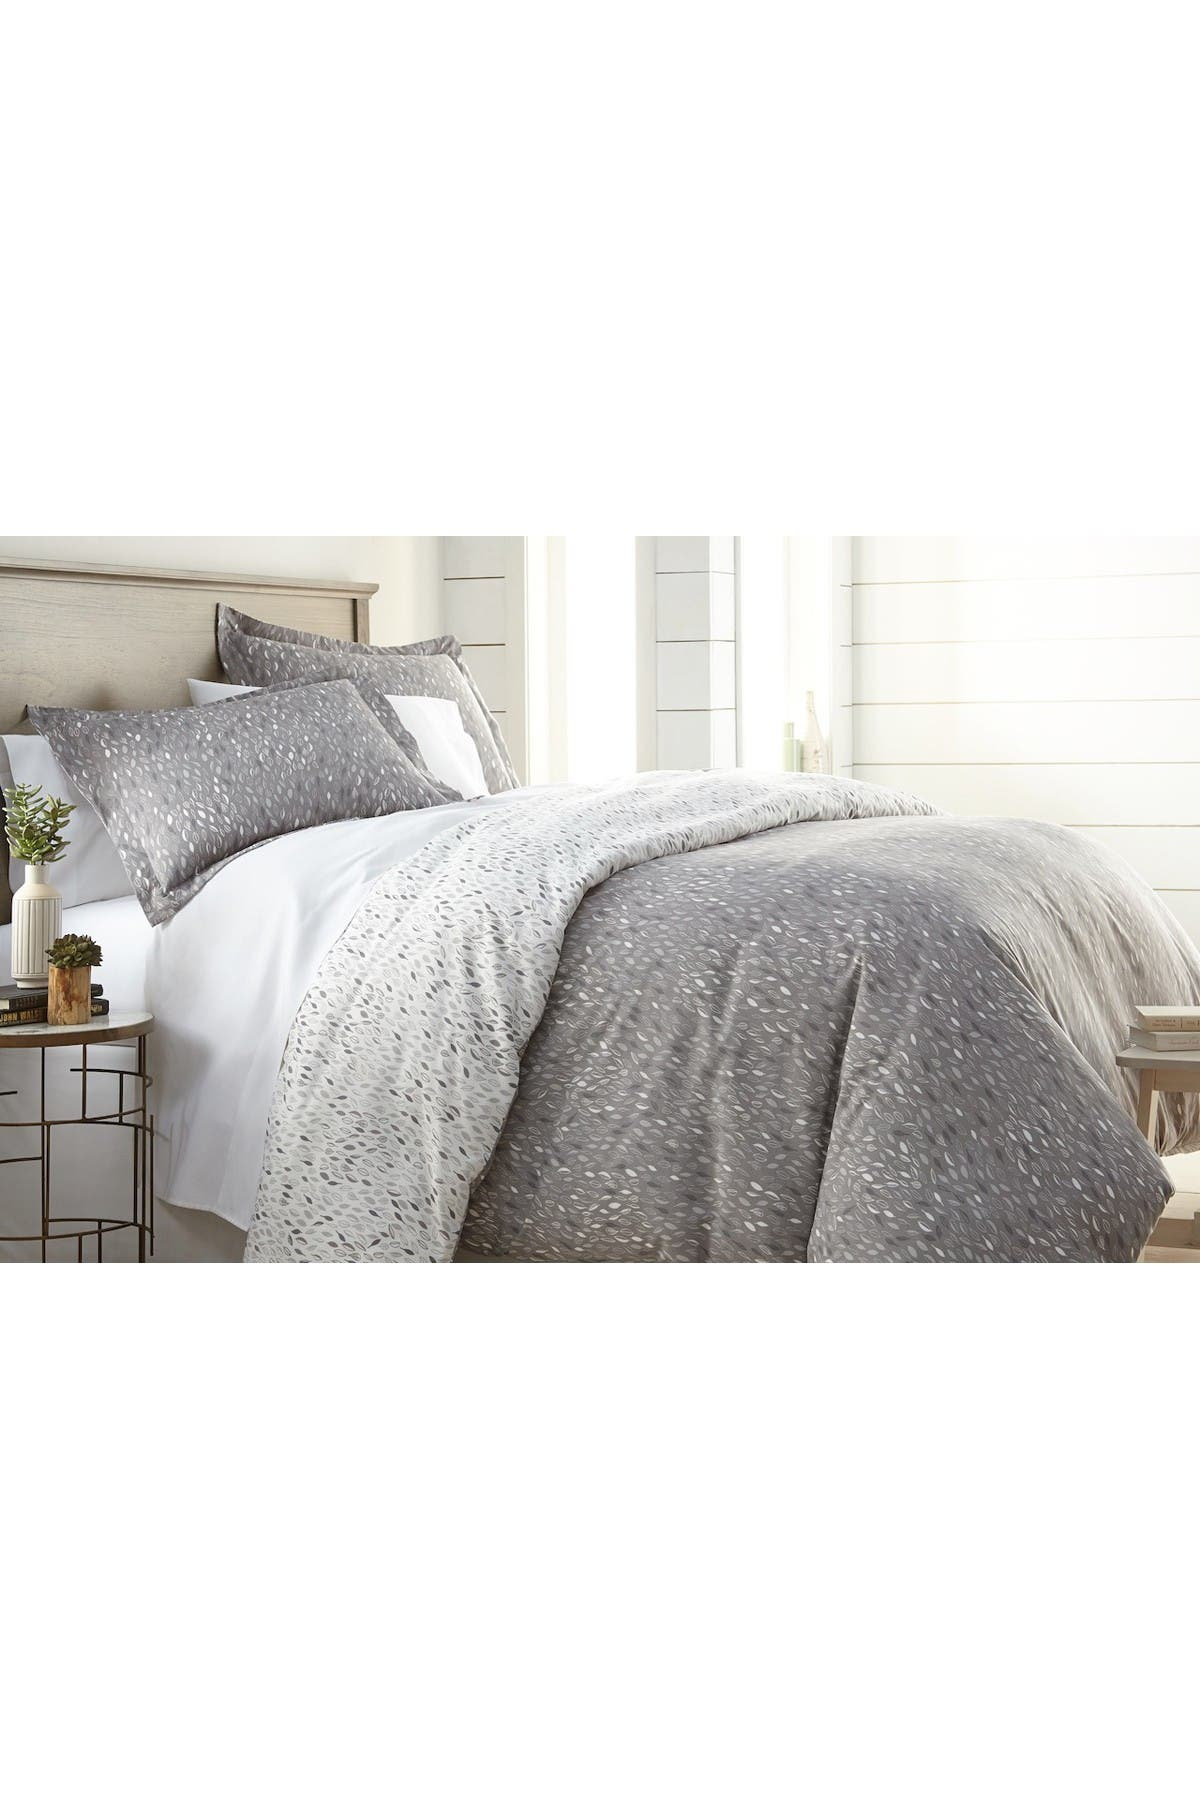 Image of SOUTHSHORE FINE LINENS Luxury Premium Collection Oversized Comforter Set - King/California King